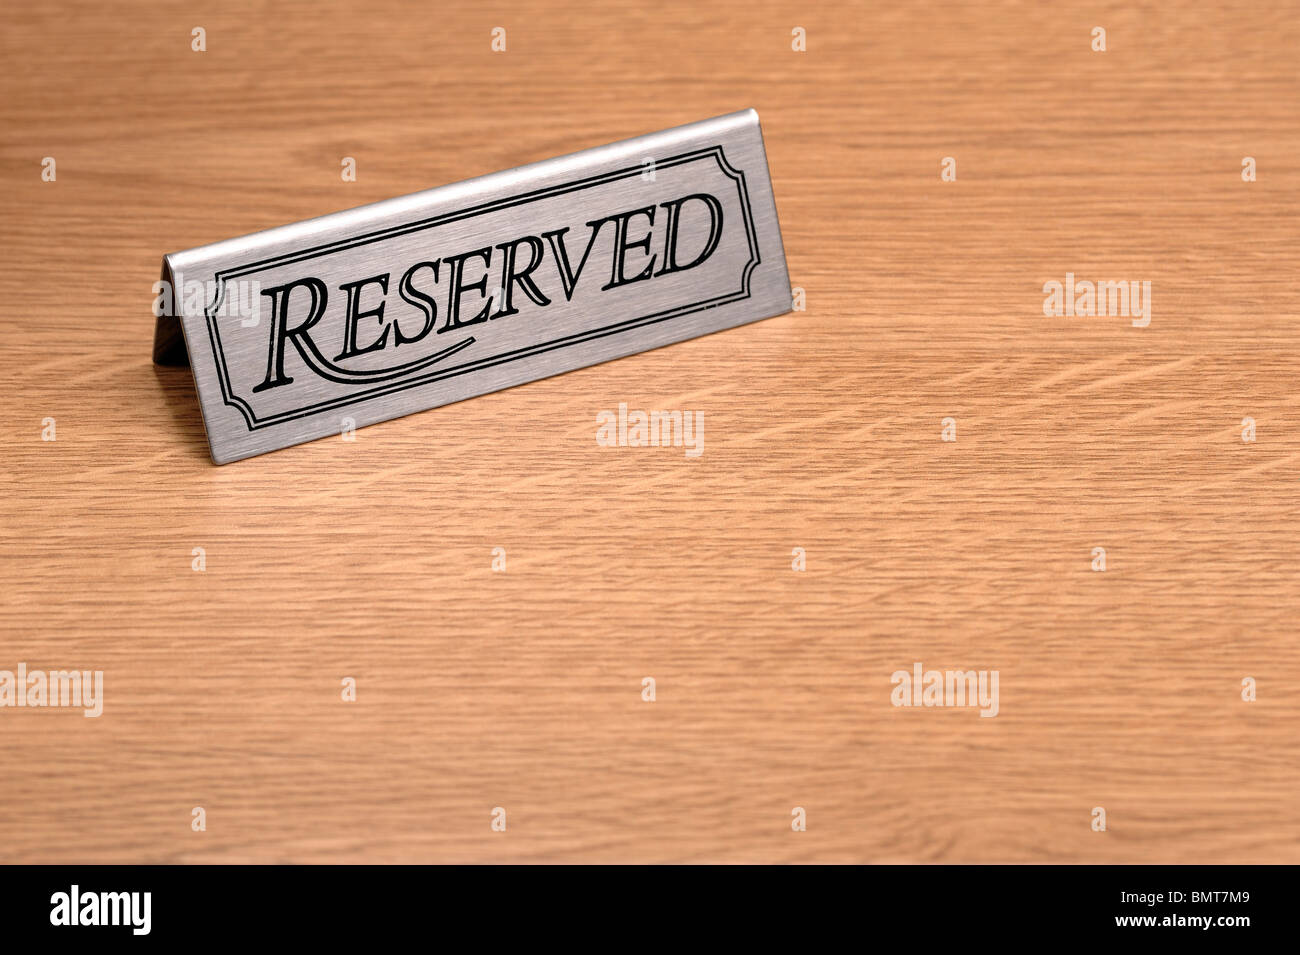 Reserved table sign - Stock Image